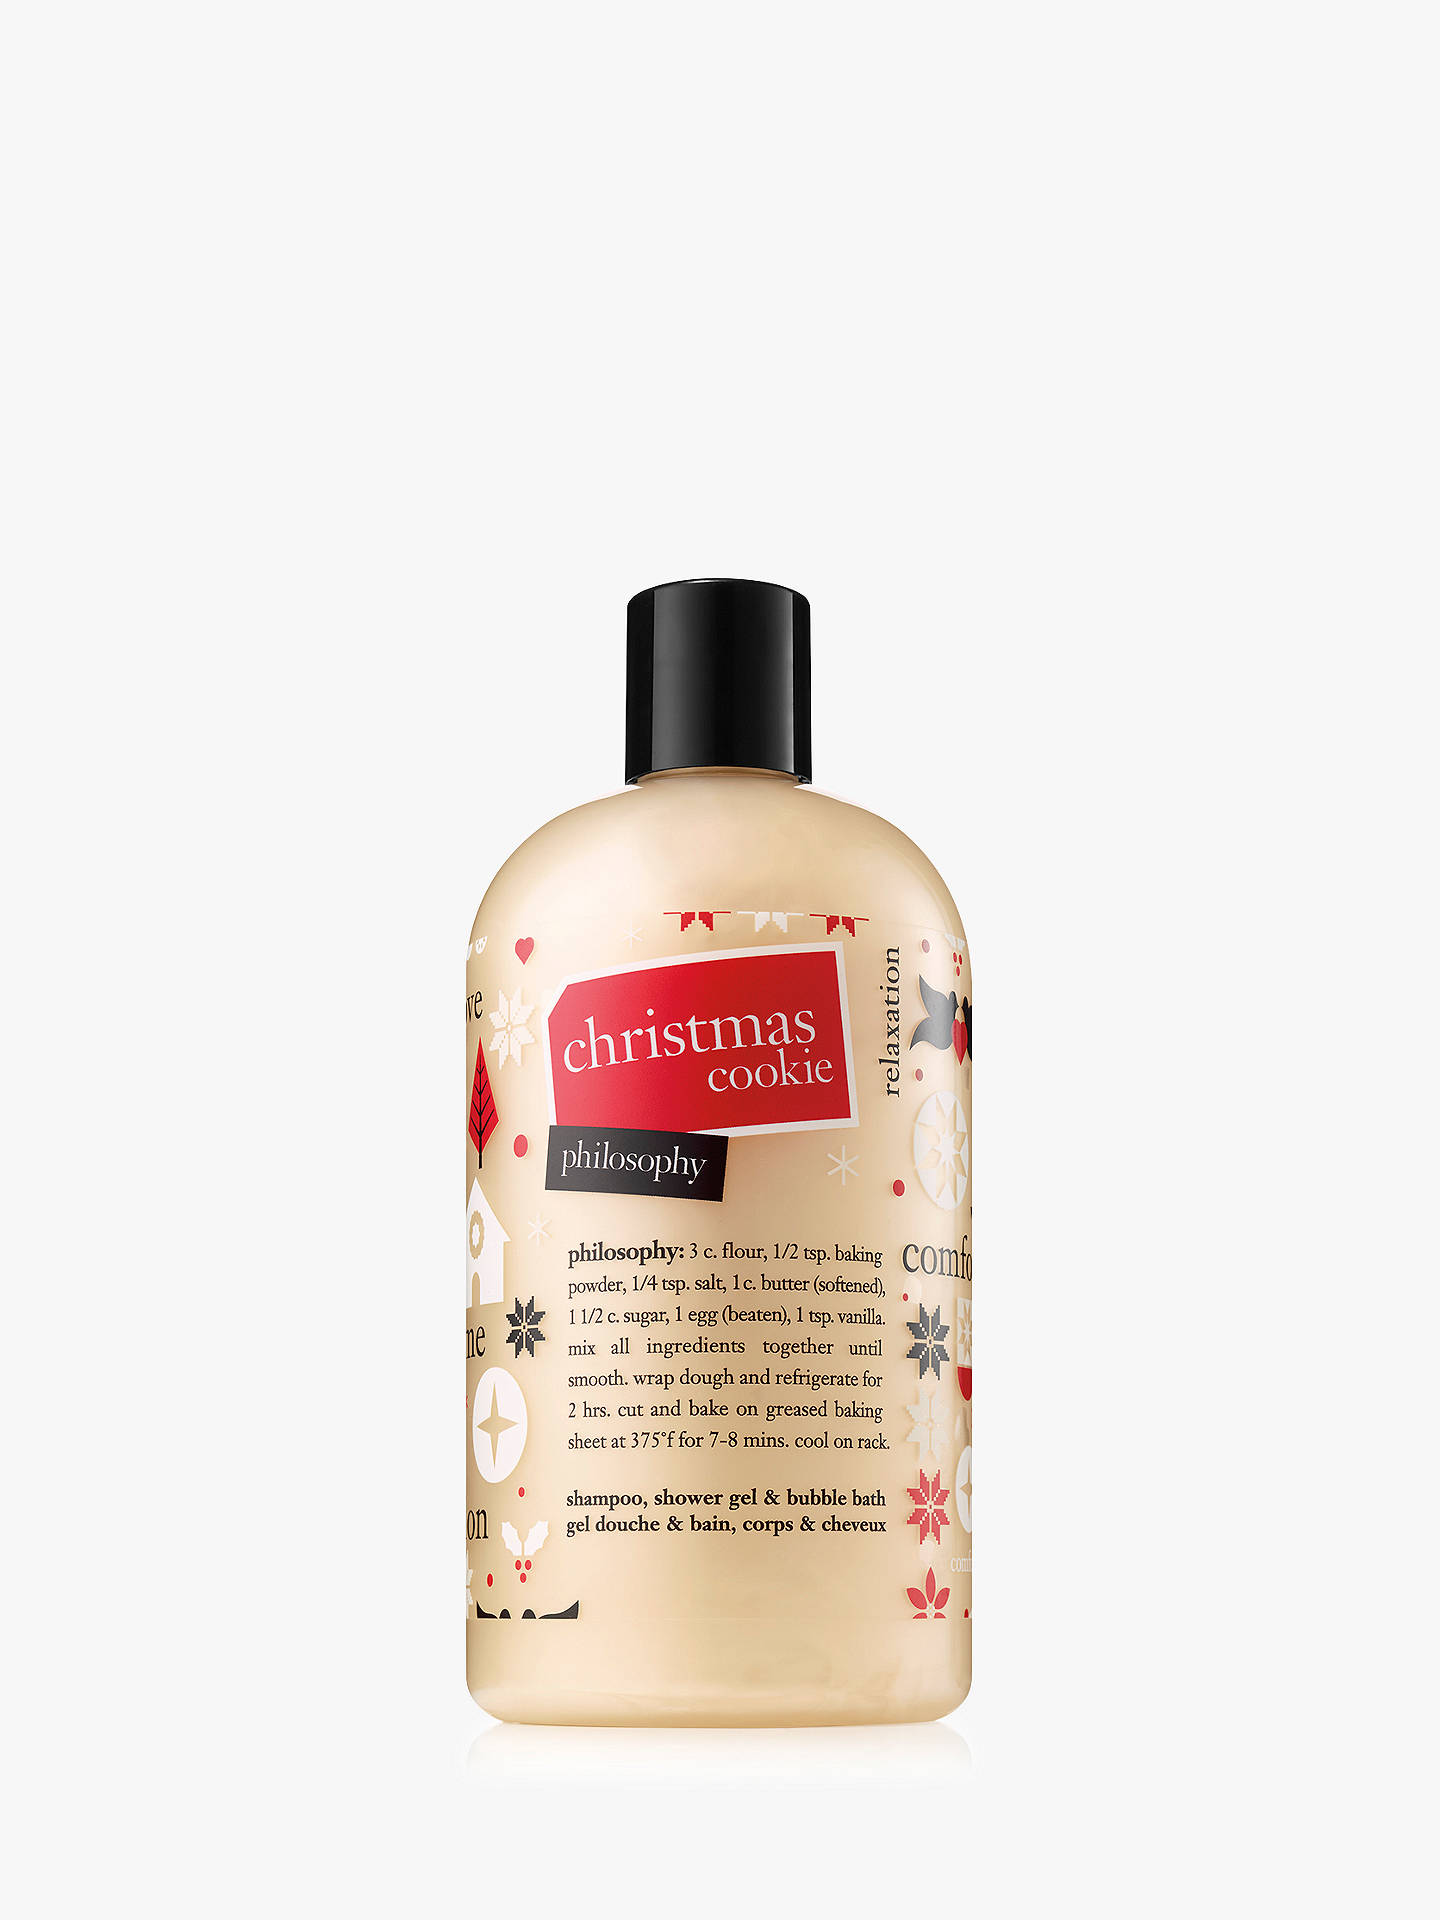 Buy Philosophy Christmas Cookie Shampoo, Shower Gel & Bubble Bath, 480ml Online at johnlewis.com